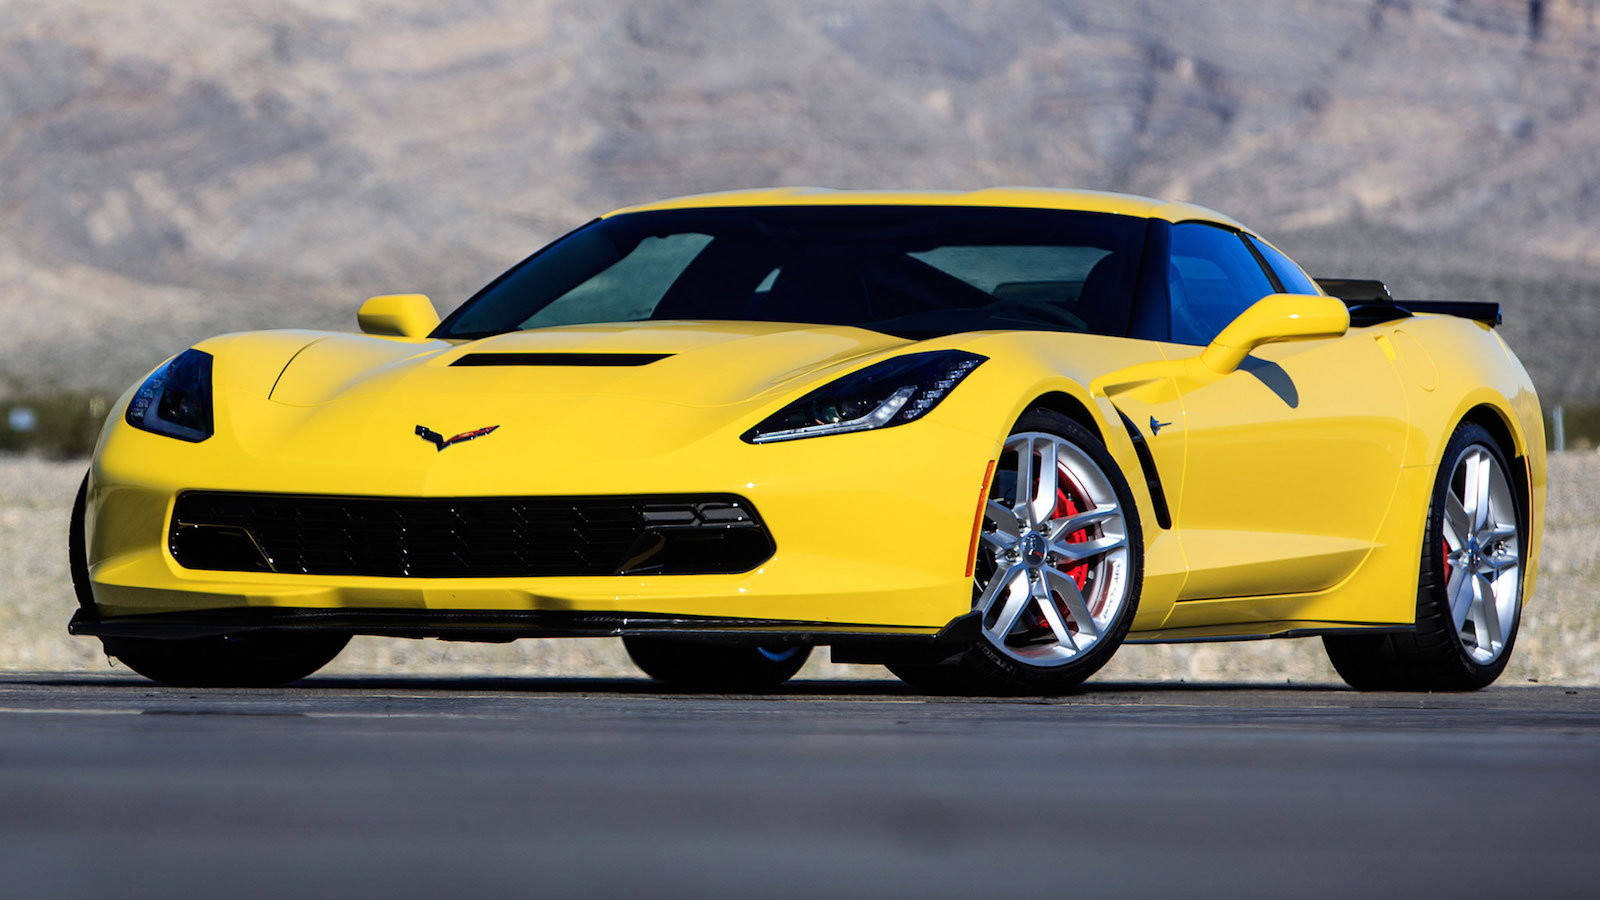 C7 - Corvette Stingray reborn